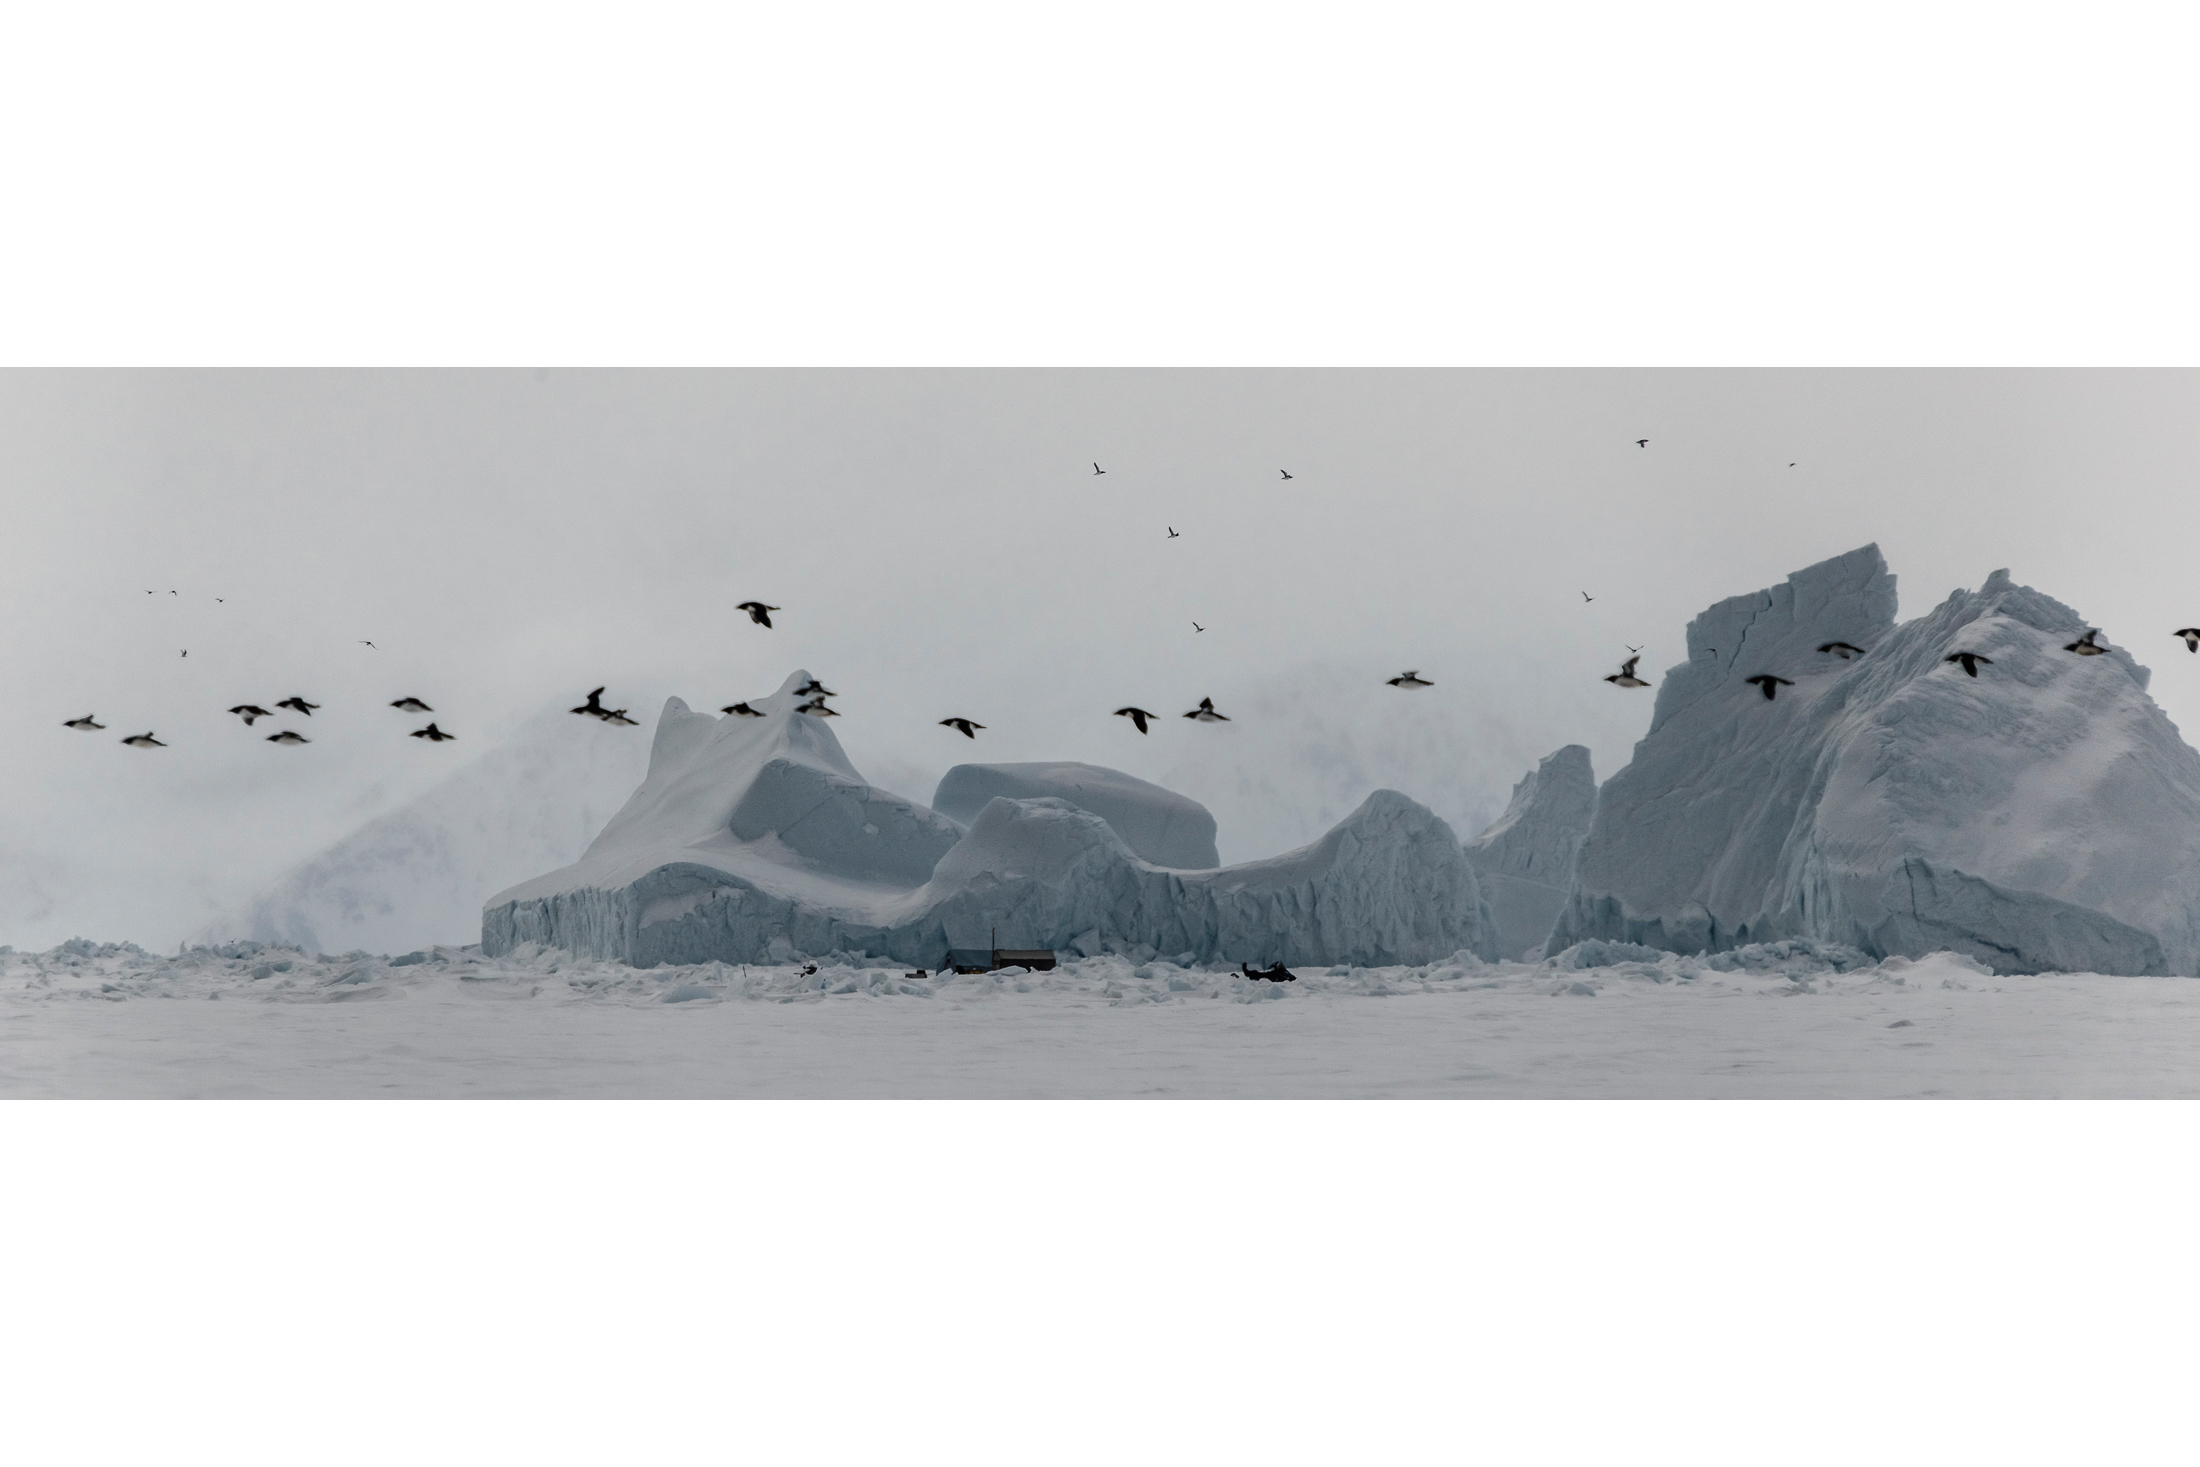 Inuit Hunting Camp on the Sea Ice